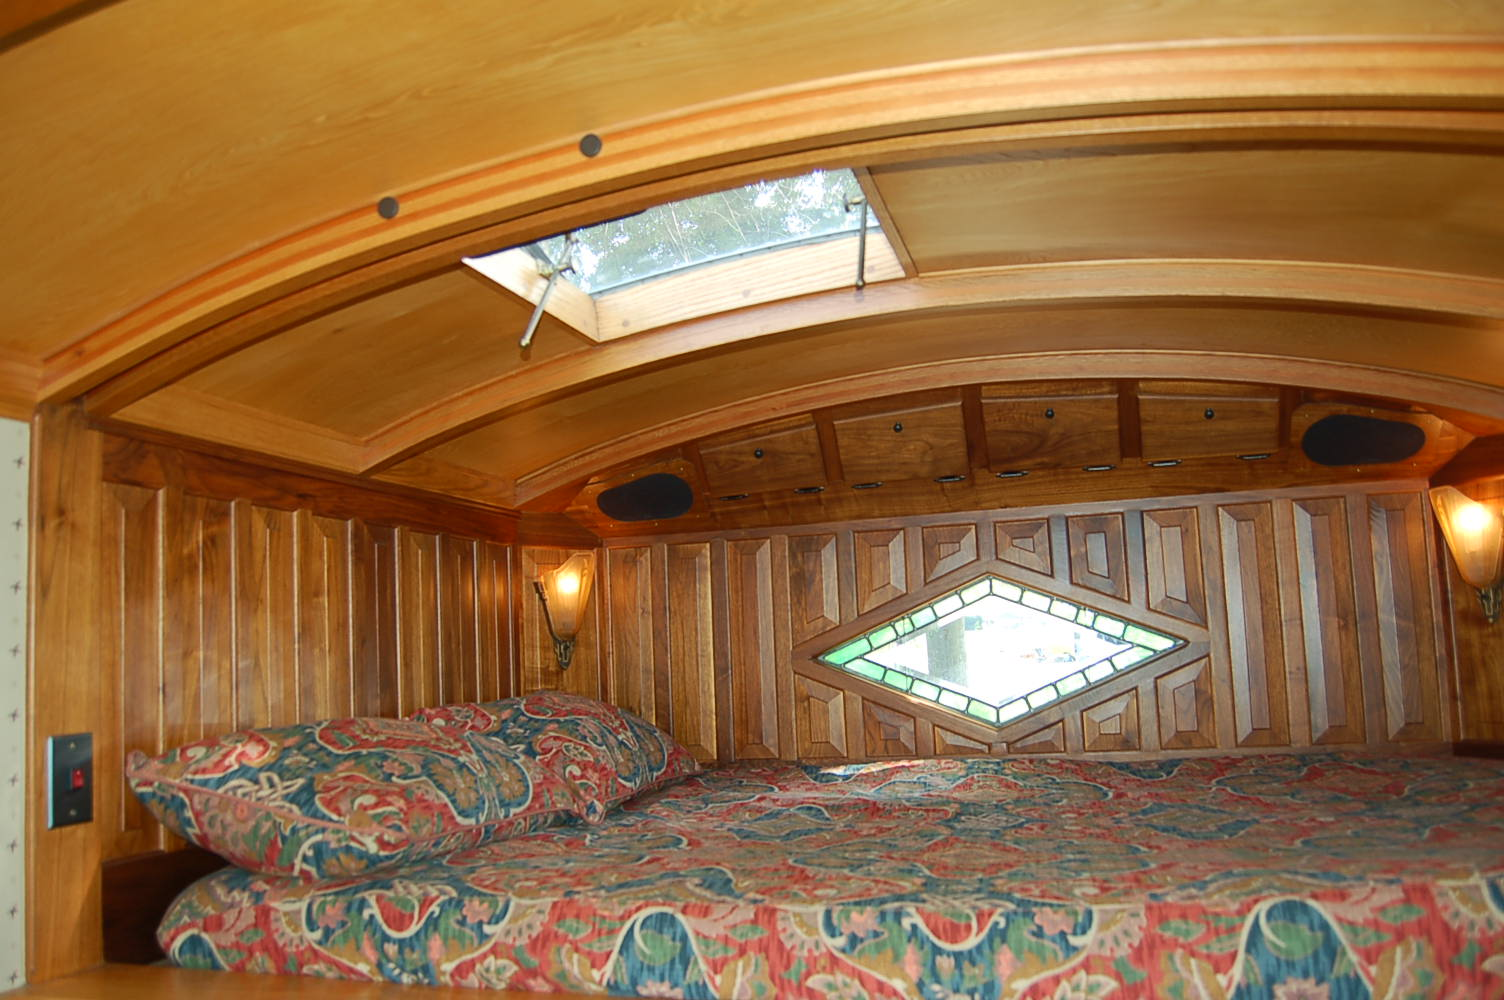 Beautiful wood work on the curved ceiling and raised panel walls in the  sleeping loft  1959 Federal Truck Camper Curved Ceiling Sleeping Loft. Vintage Truck Based Camper Trailers  from OldTrailer com